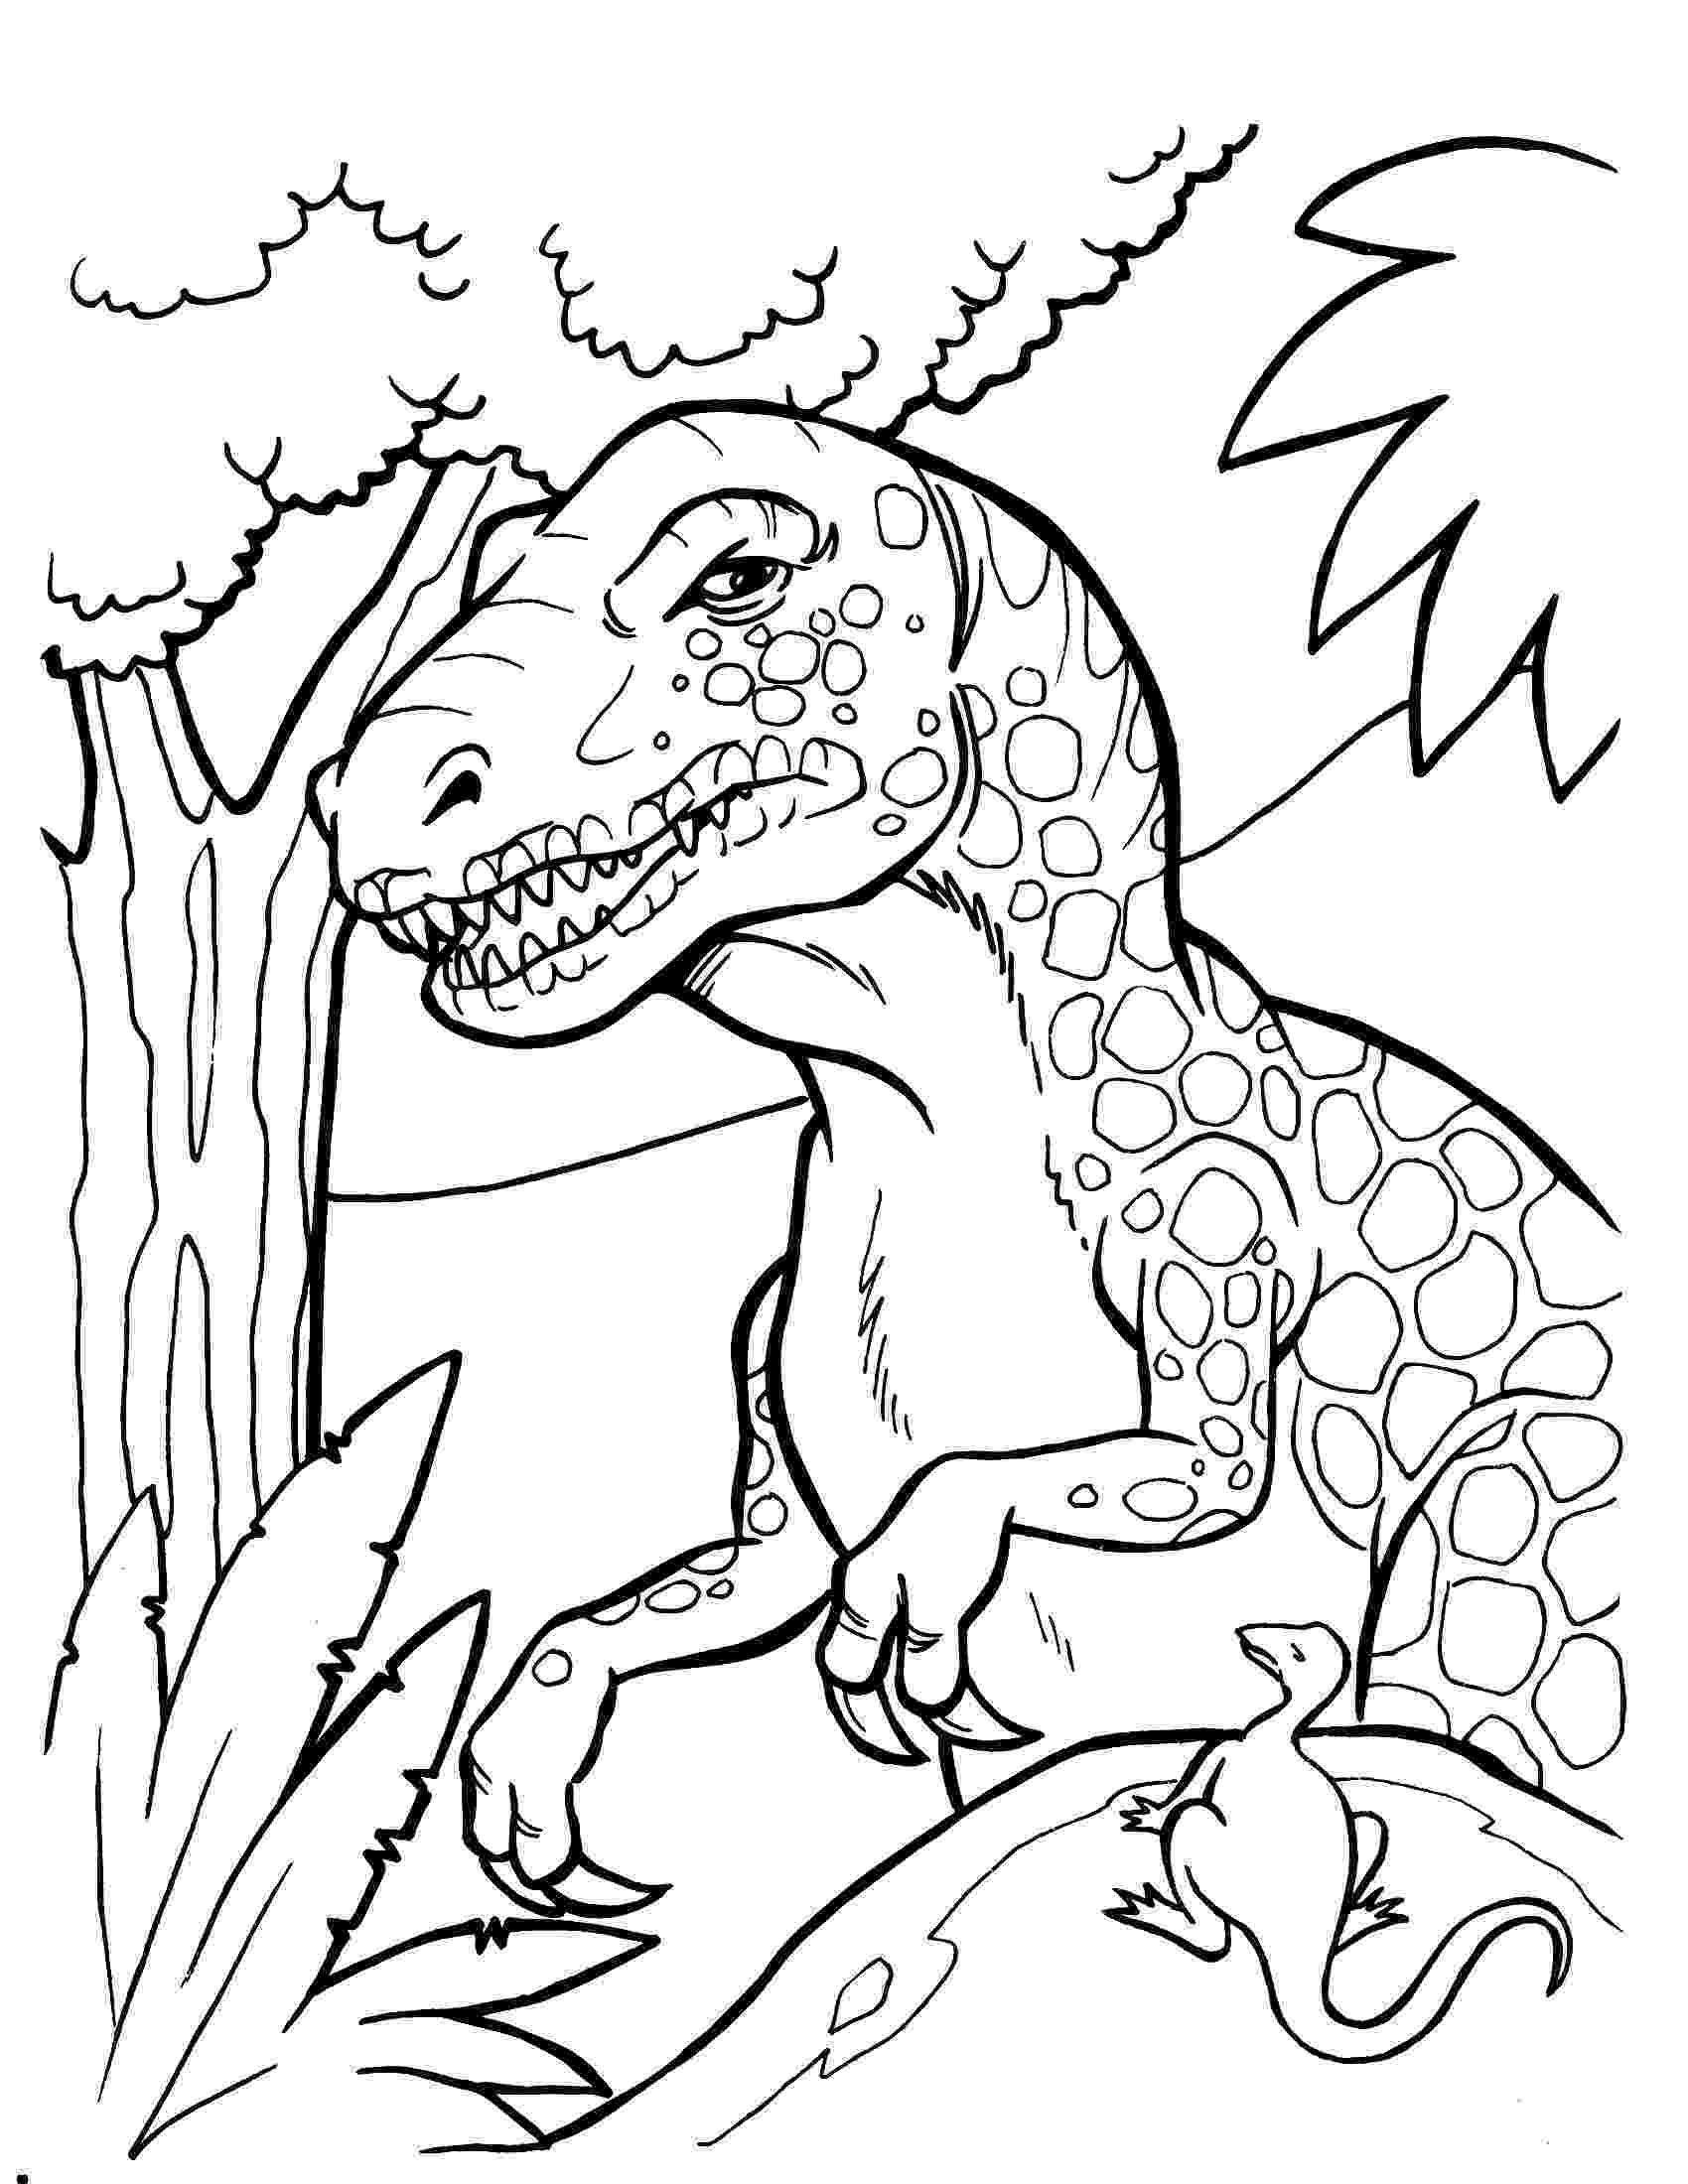 dinosaurs colouring pictures to print blog de los niños dinosaurios para colorear print pictures to dinosaurs colouring